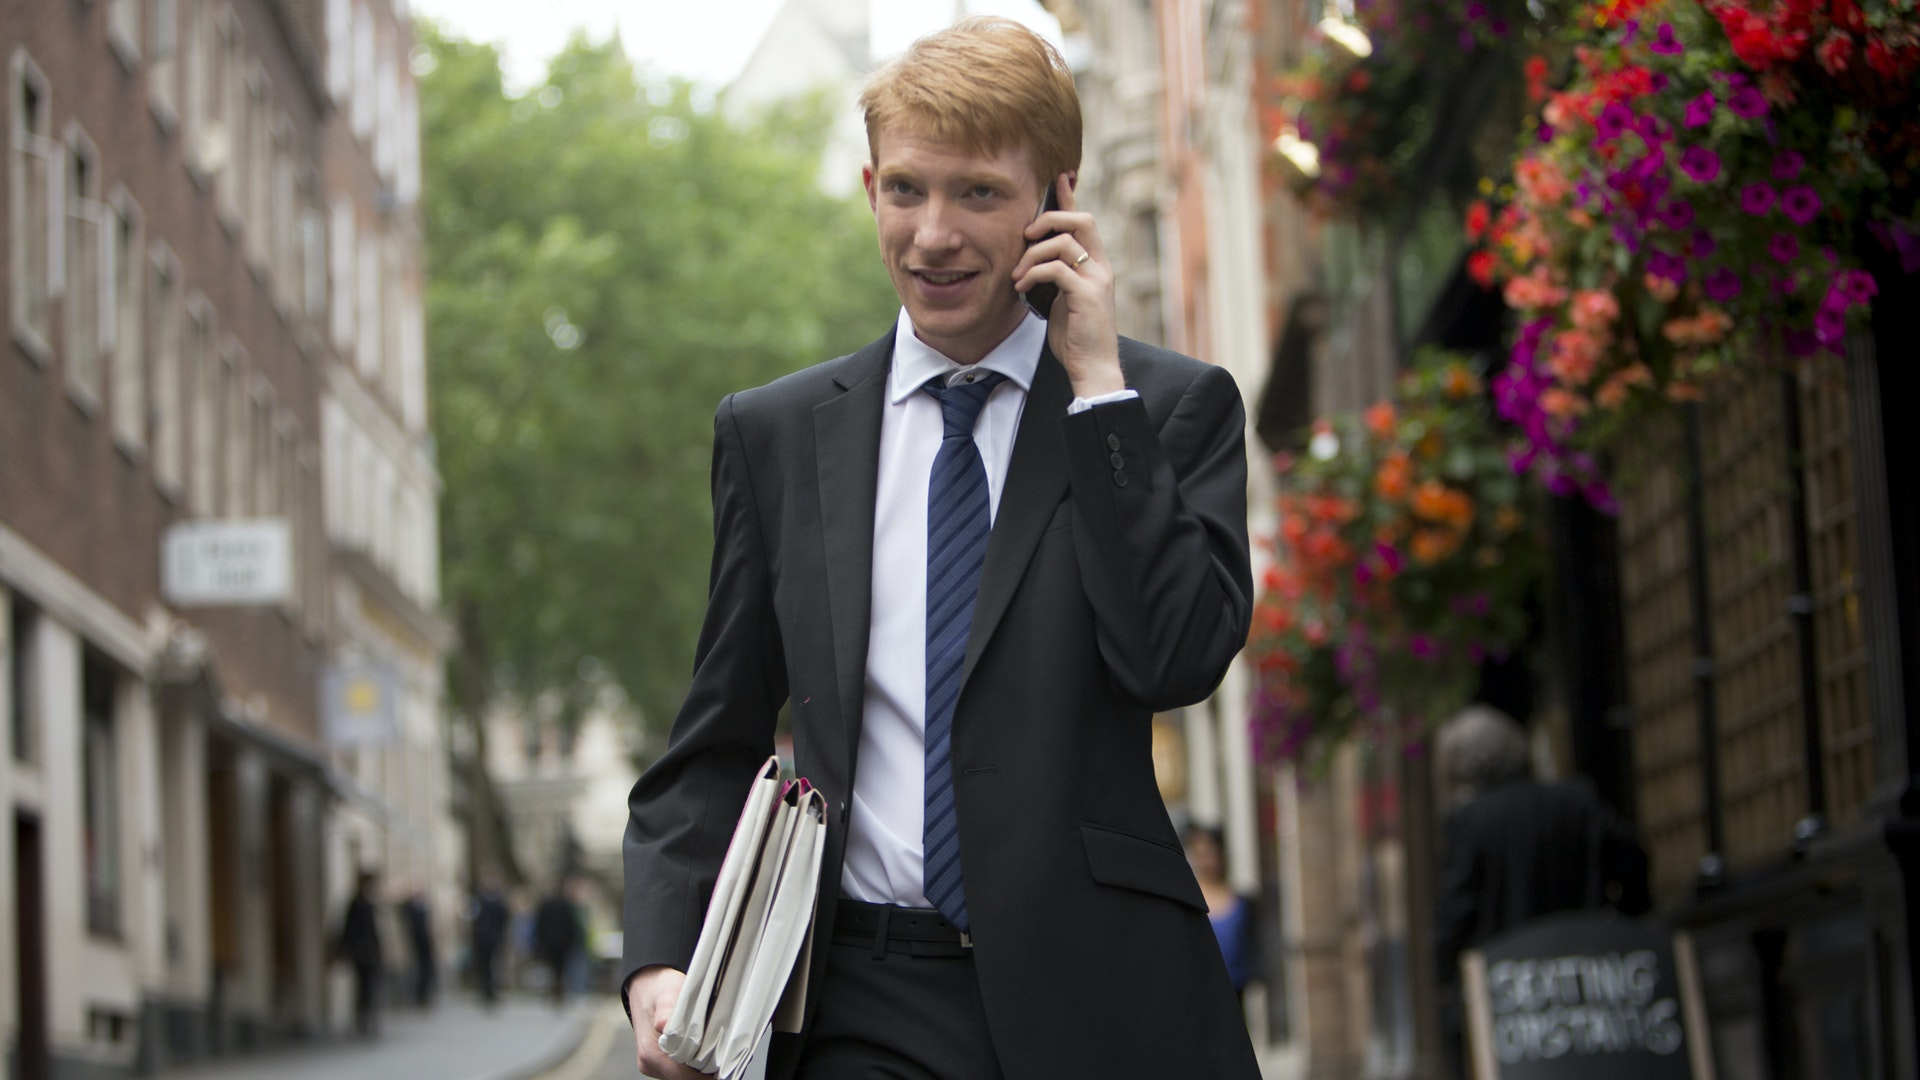 about-time-domnhall-gleeson-6